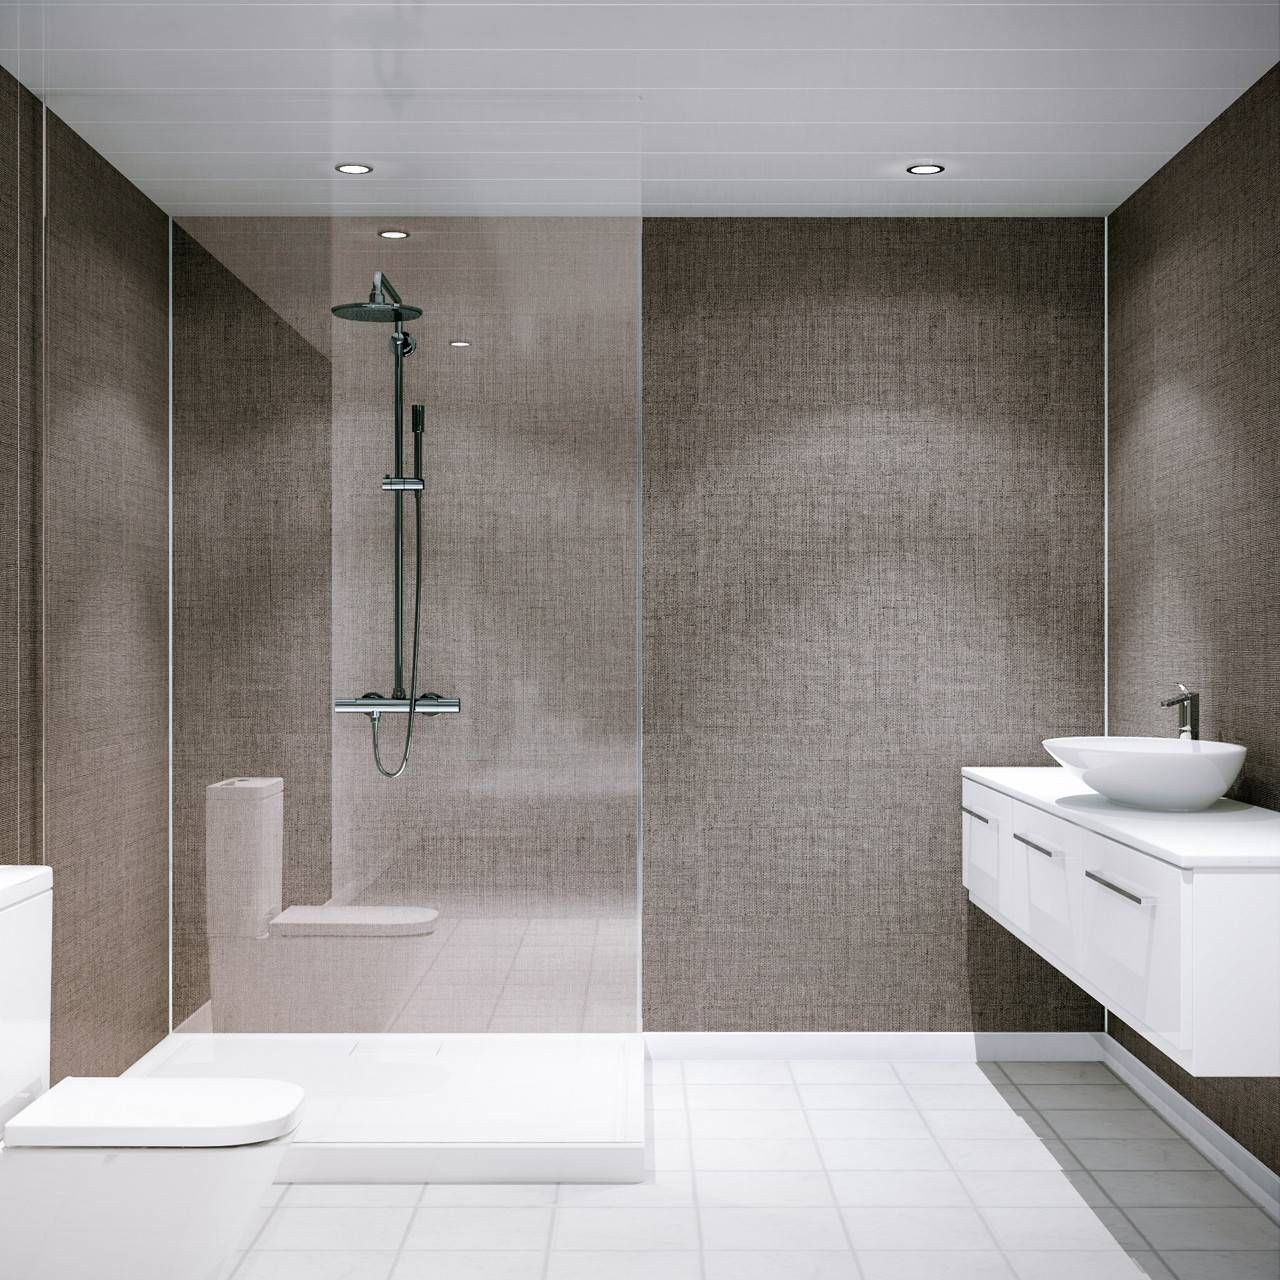 25 Shower Wall Panels Instead Of Tiles With Images Shower Wall Panels Bathroom Shower Design Bathroom Wall Cladding